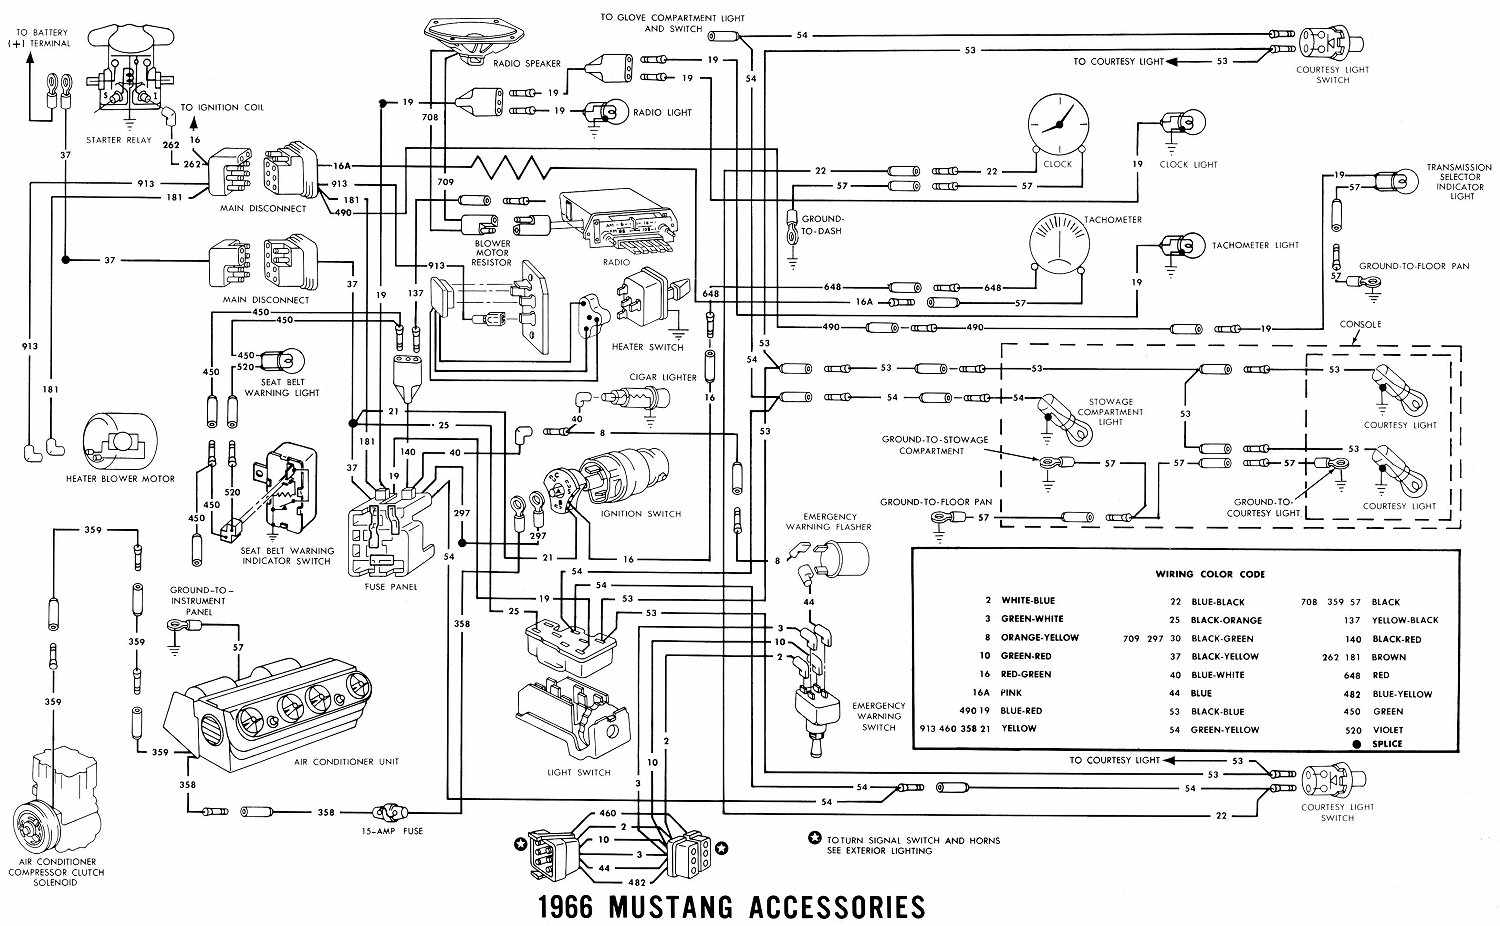 1965 mustang wiring diagram printable